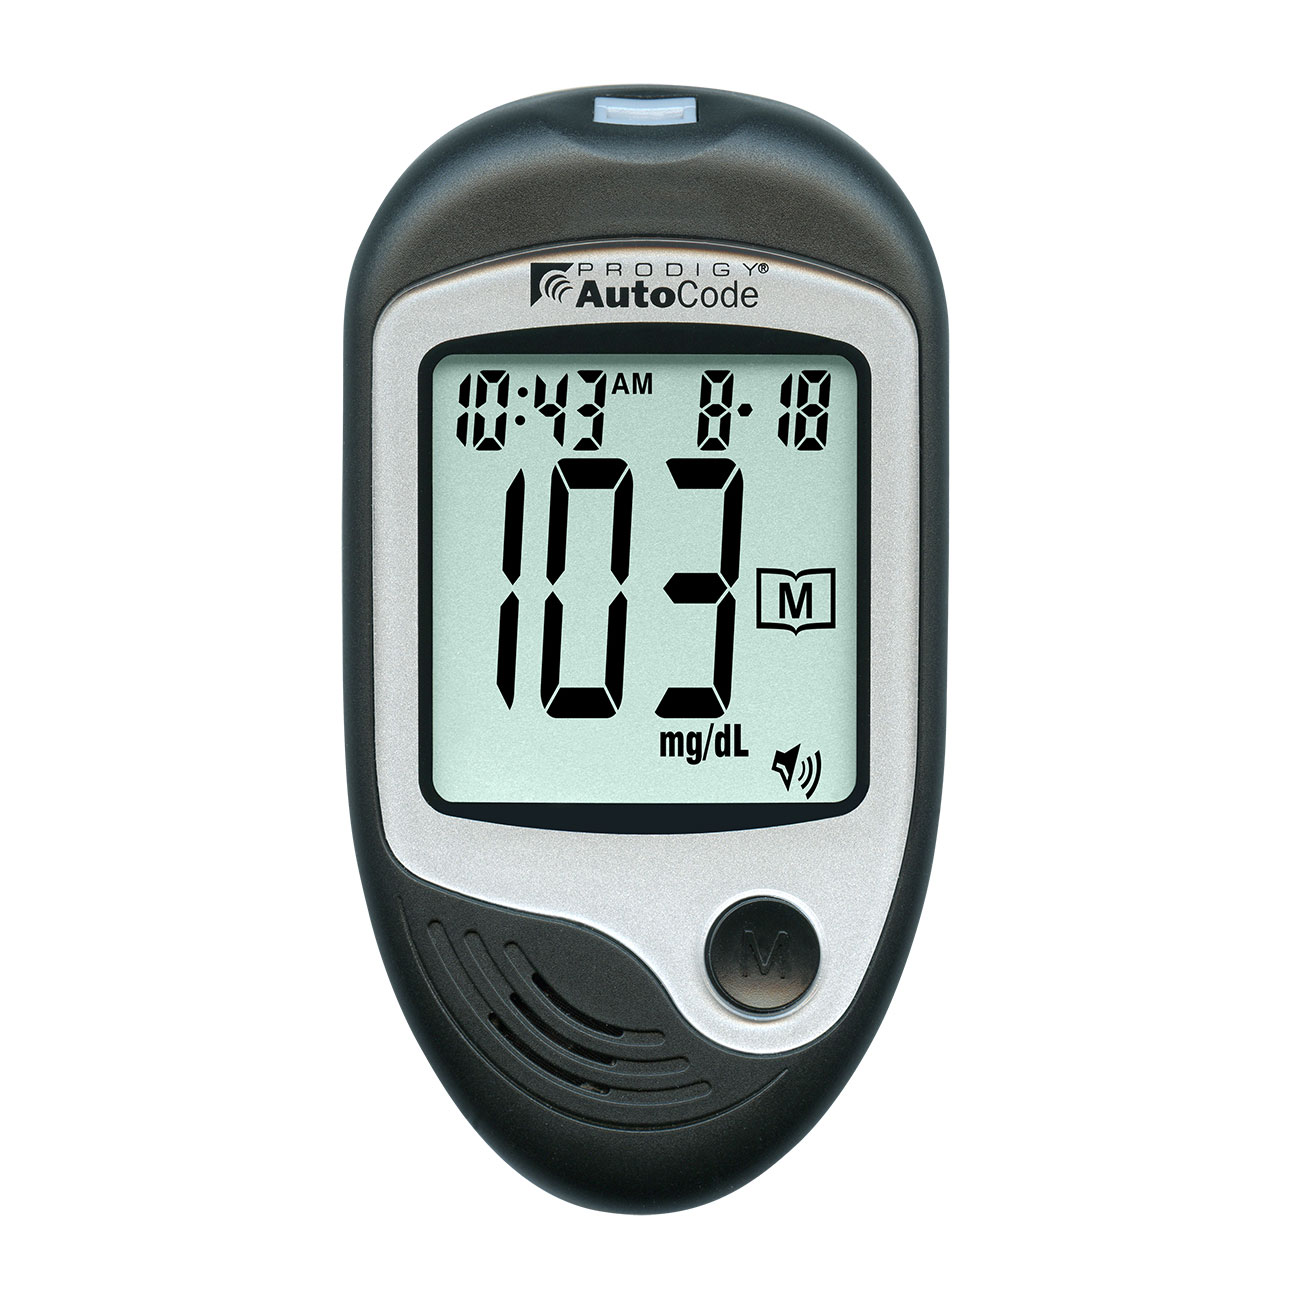 Prodigy AutoCode Talking Blood Glucose Monitoring Kit: Bilingual - English or Spanish Price: $29.95